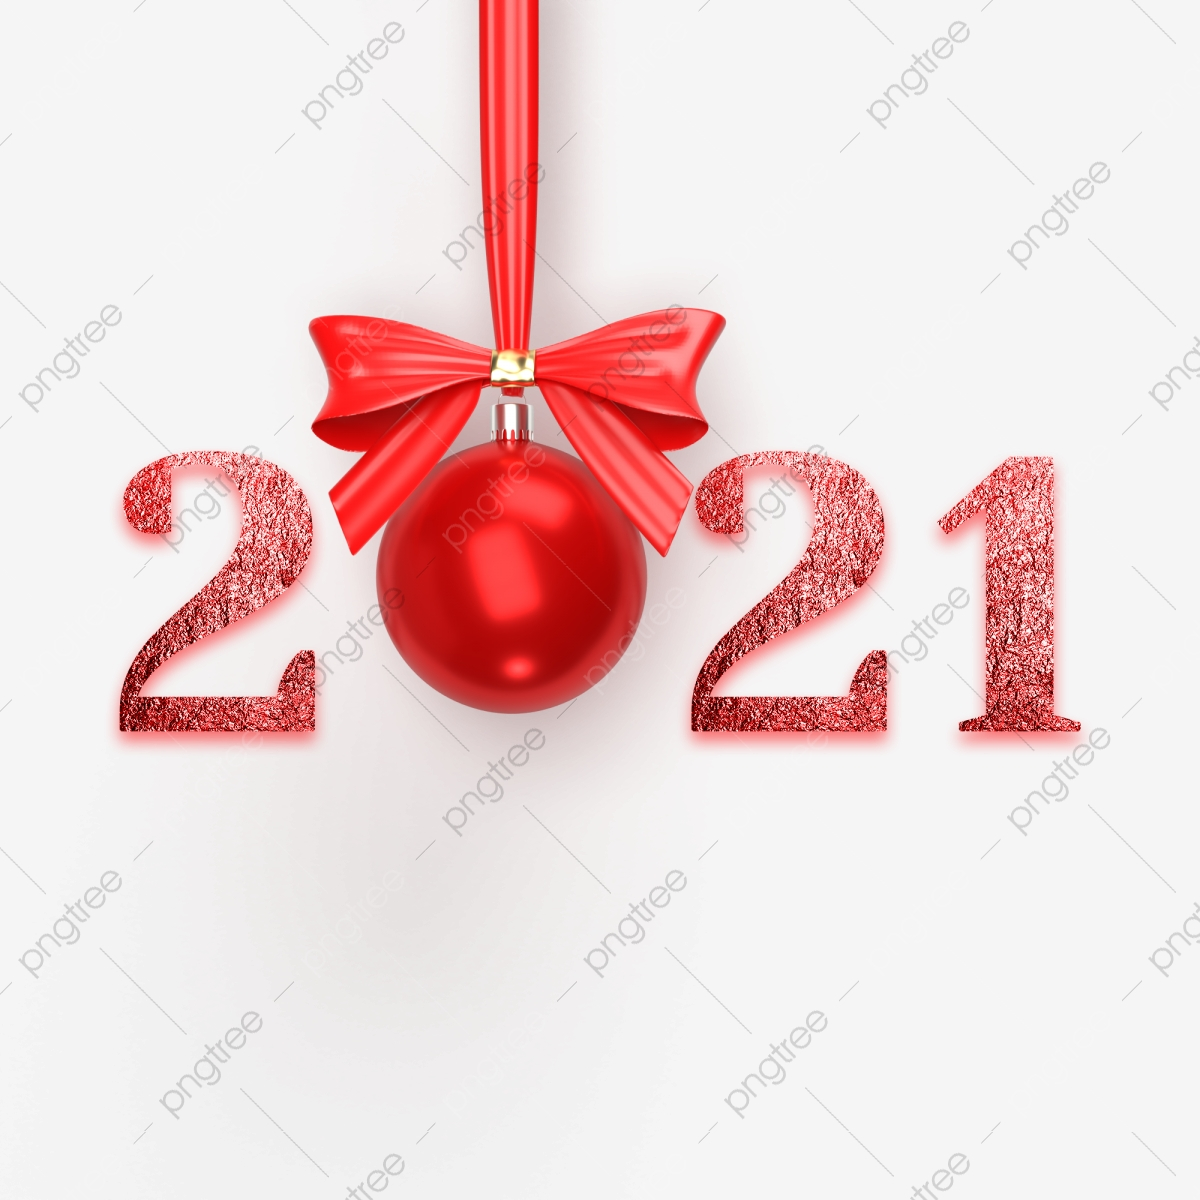 2021 Christmas .Png Christmas 2021 Png Images Vector And Psd Files Free Download On Pngtree